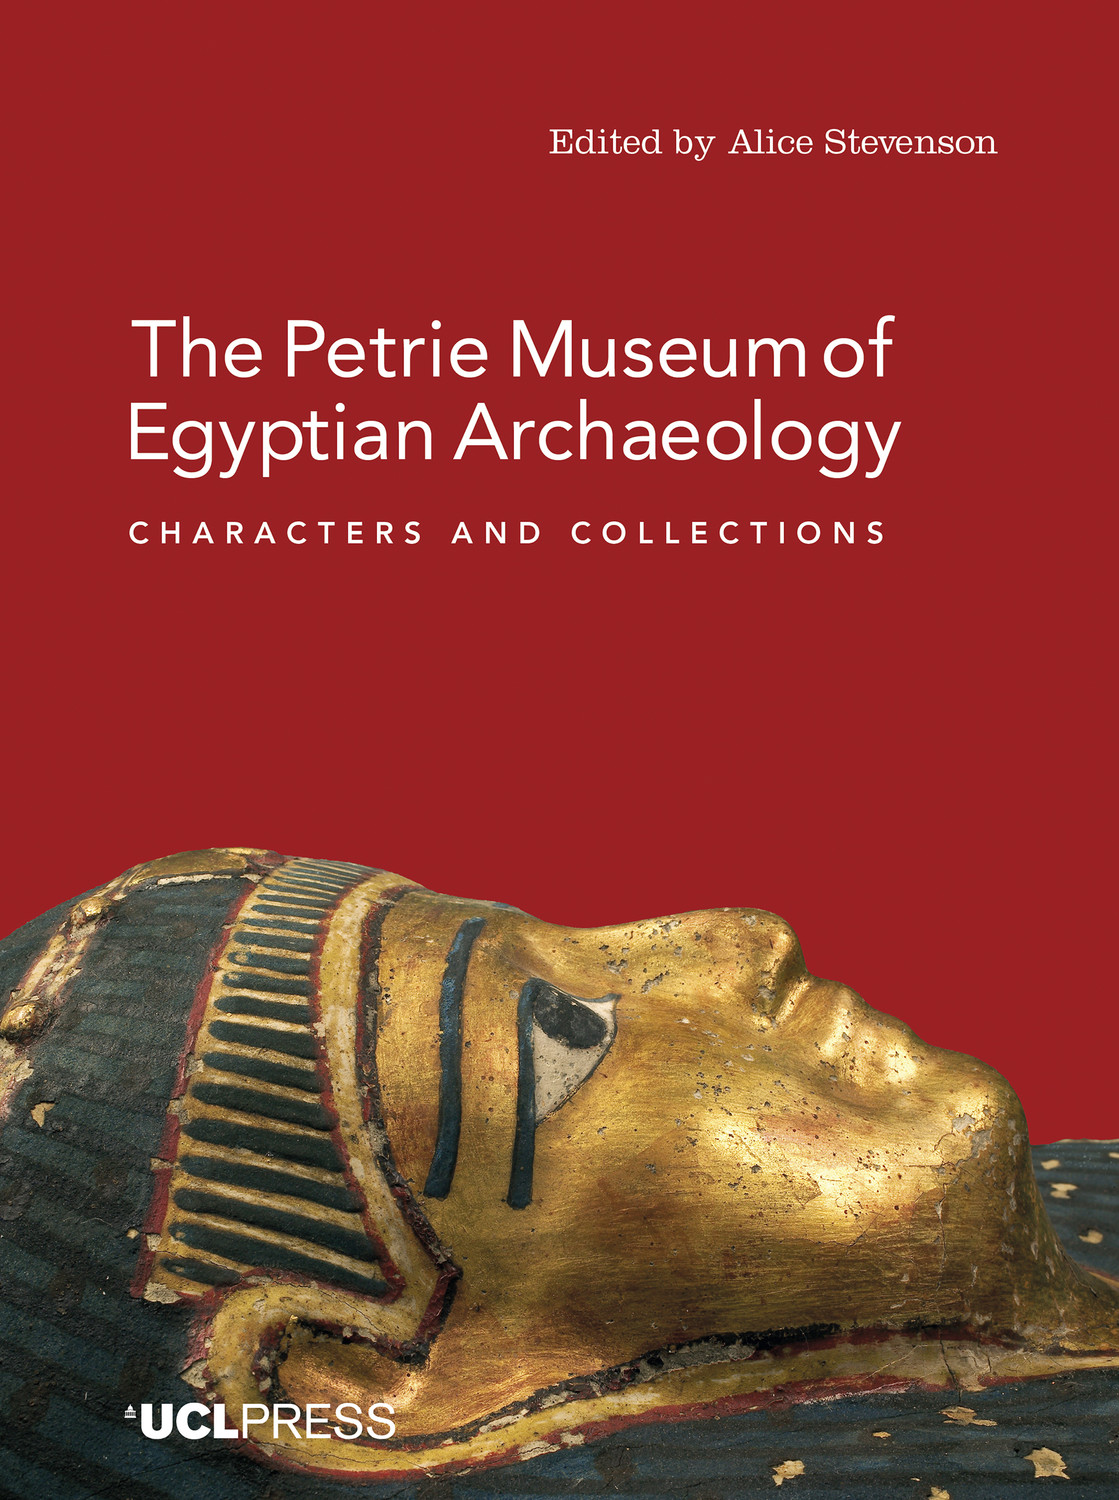 The Petrie Museum of Egyptian Archaeology – UCL Press